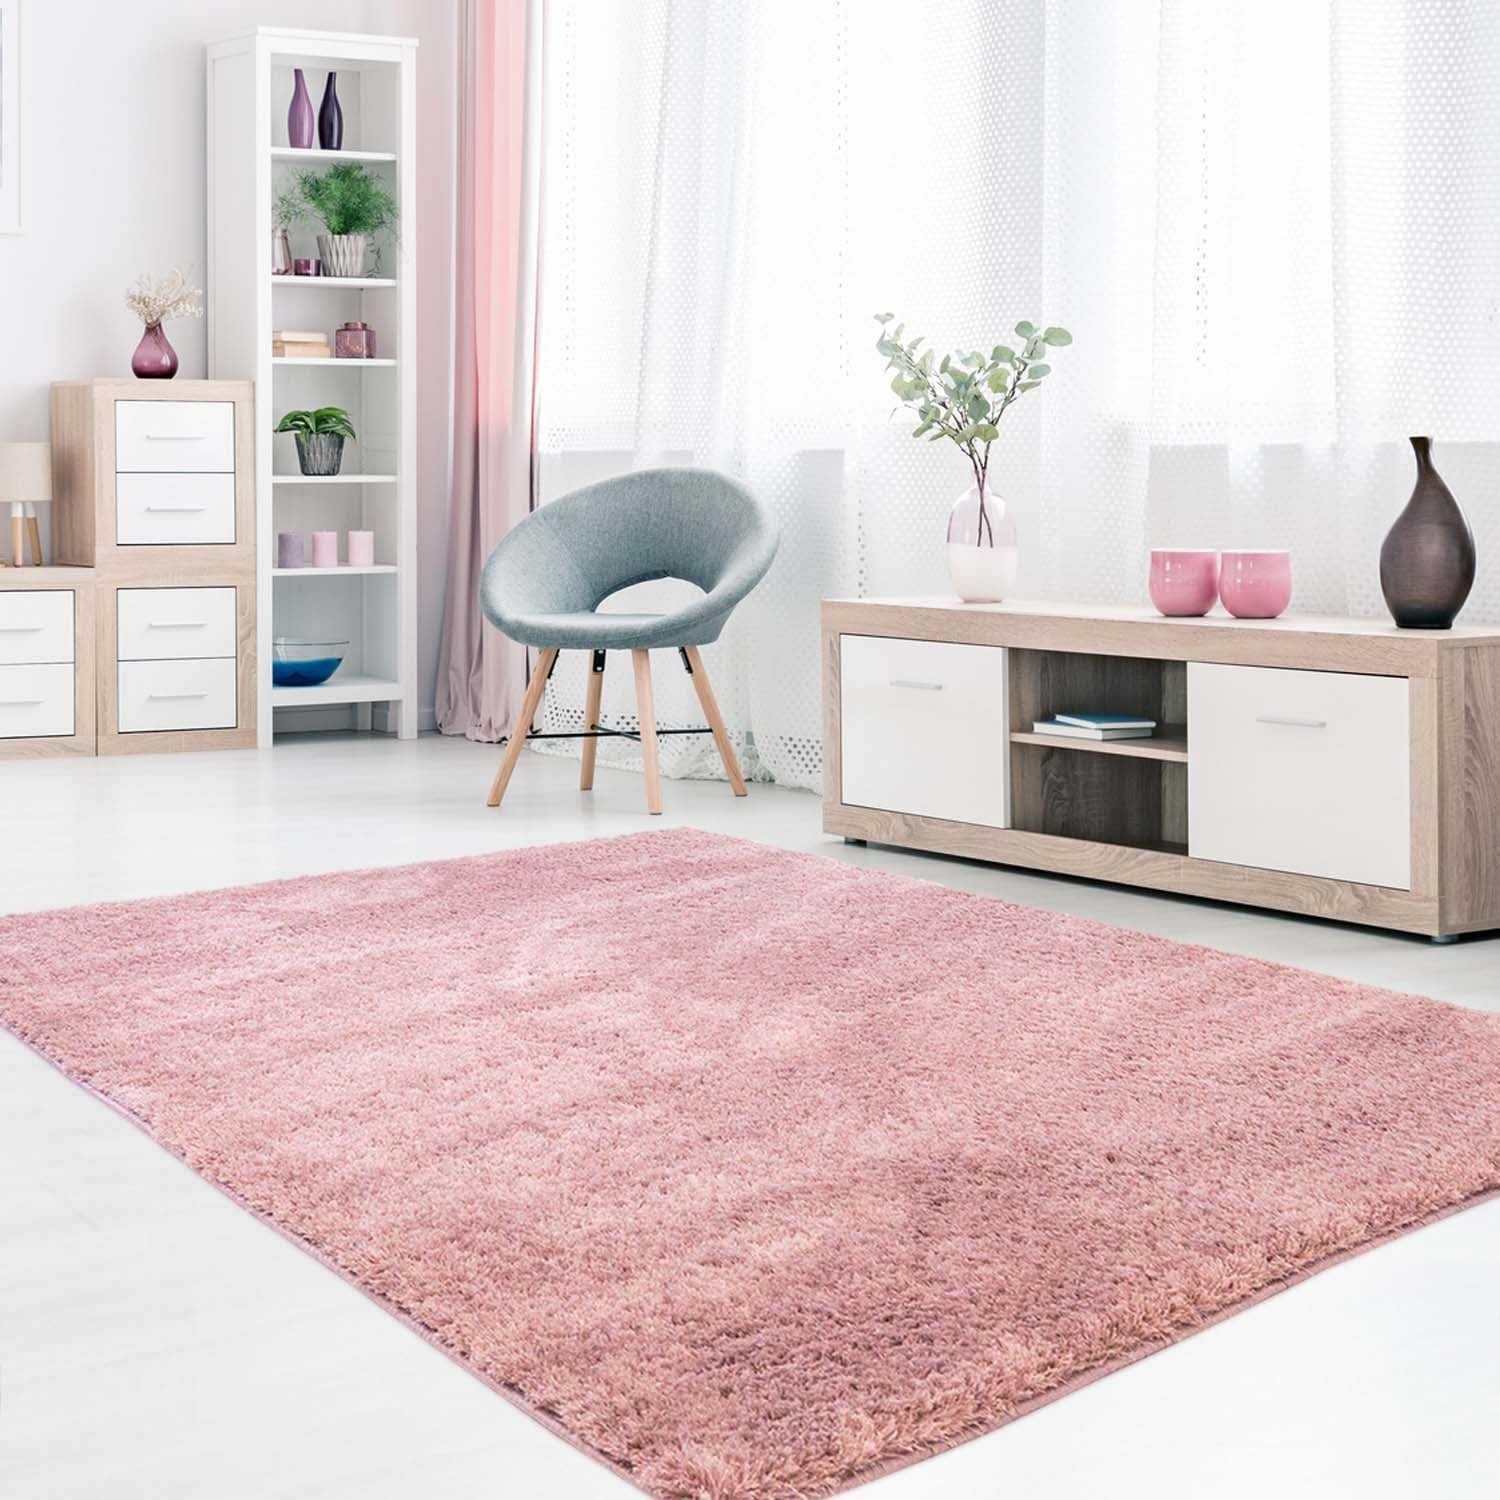 Tapijt Omid Cloud Vloerkleed Roos - Omid Carpets